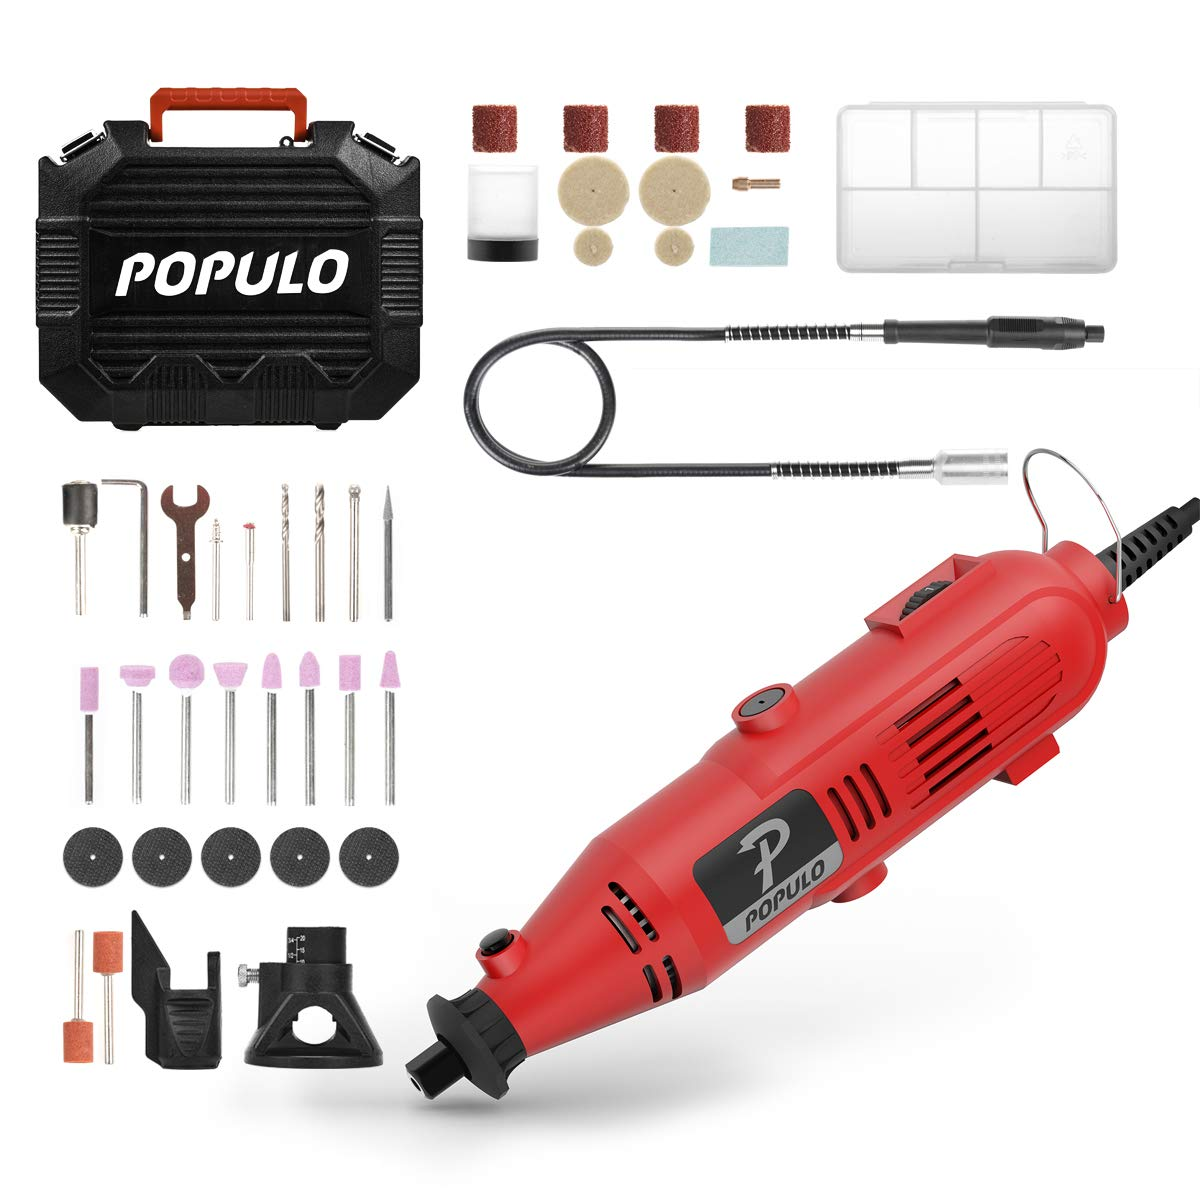 Variable Speed Flex Shaft and Universal Collet for Abrasive Polish Populo High Performance Rotary Tool Kit with 107 Accessories Cutting Drilling and Crafting DIY Project 3 Attachments Engraving